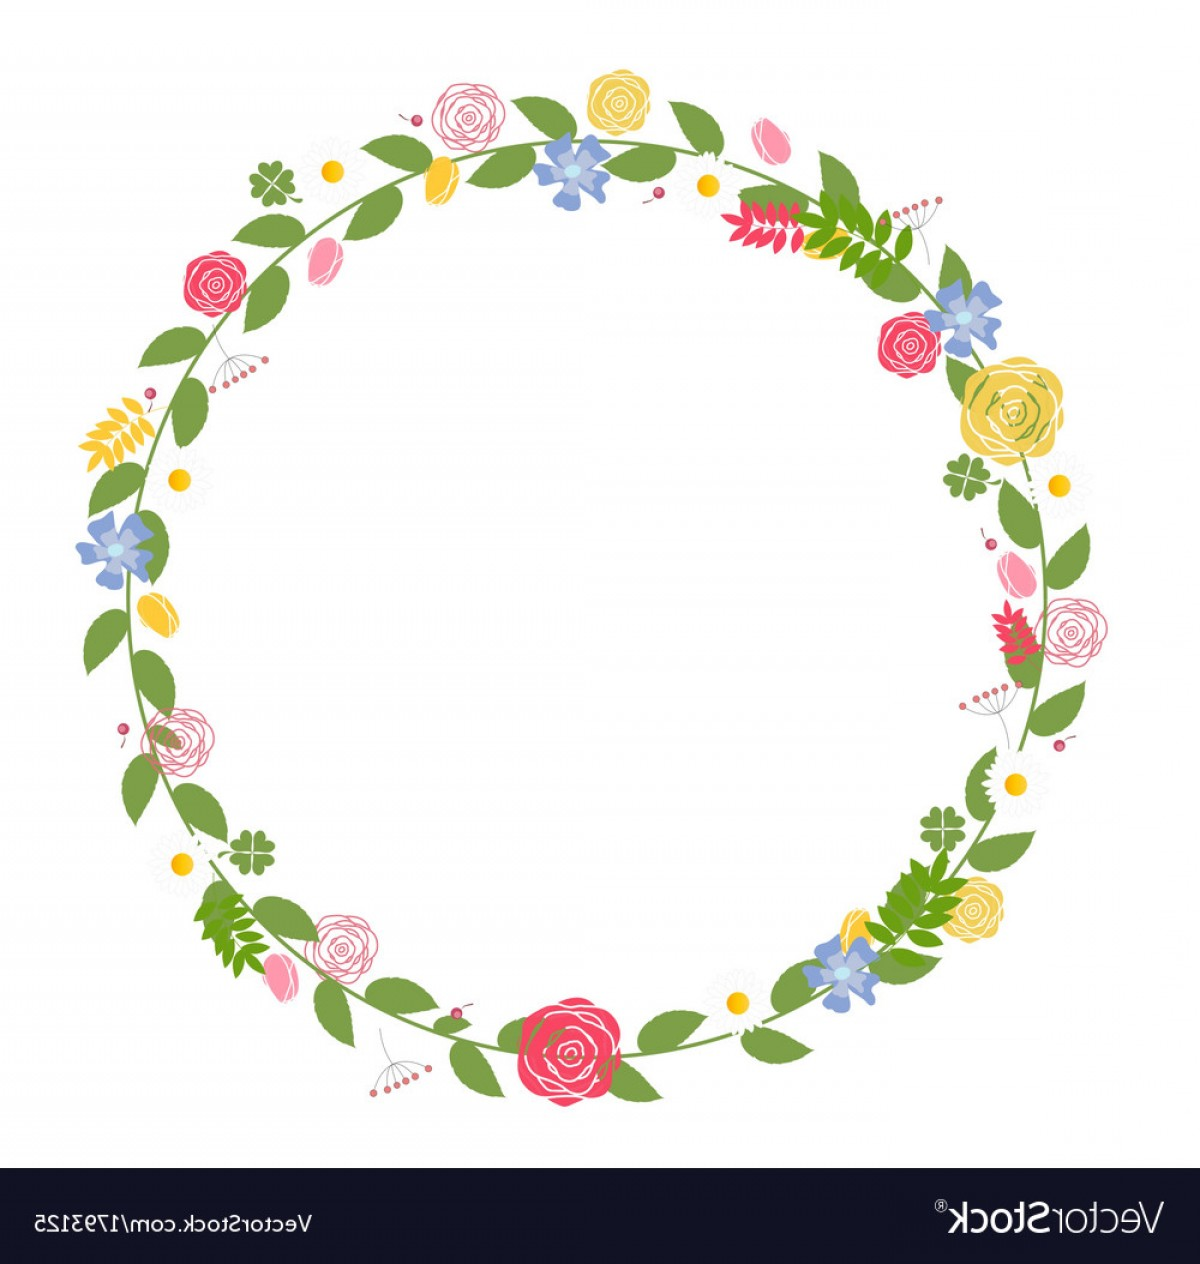 Birthday Card Vector Frame Designs: Floral Frame For Wedding And Birthday Card Vector